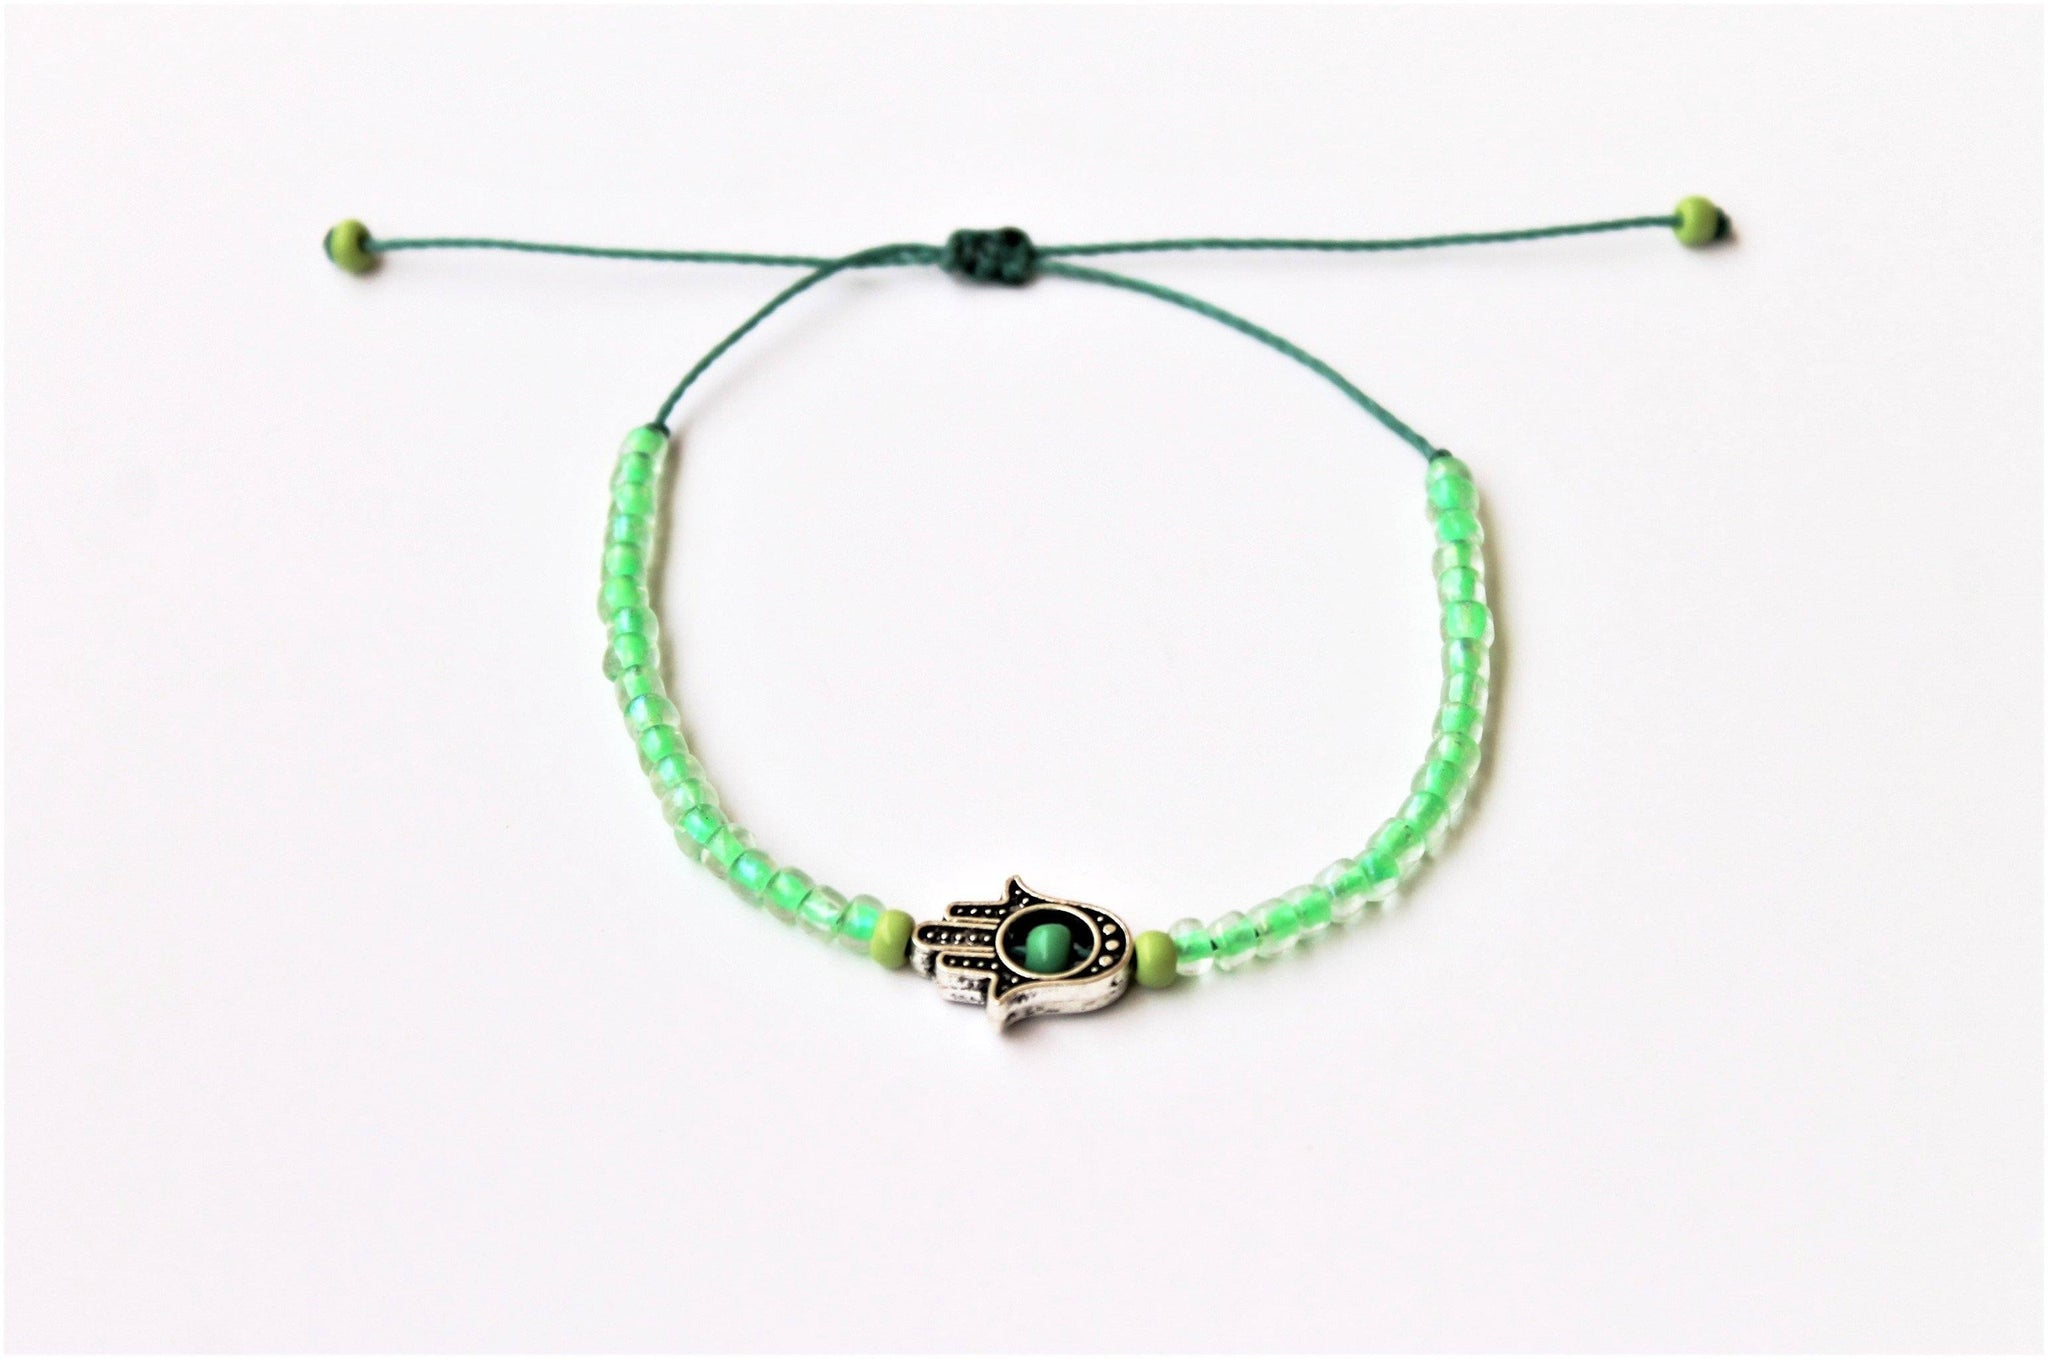 Glass Green Seed Beads with Kaf